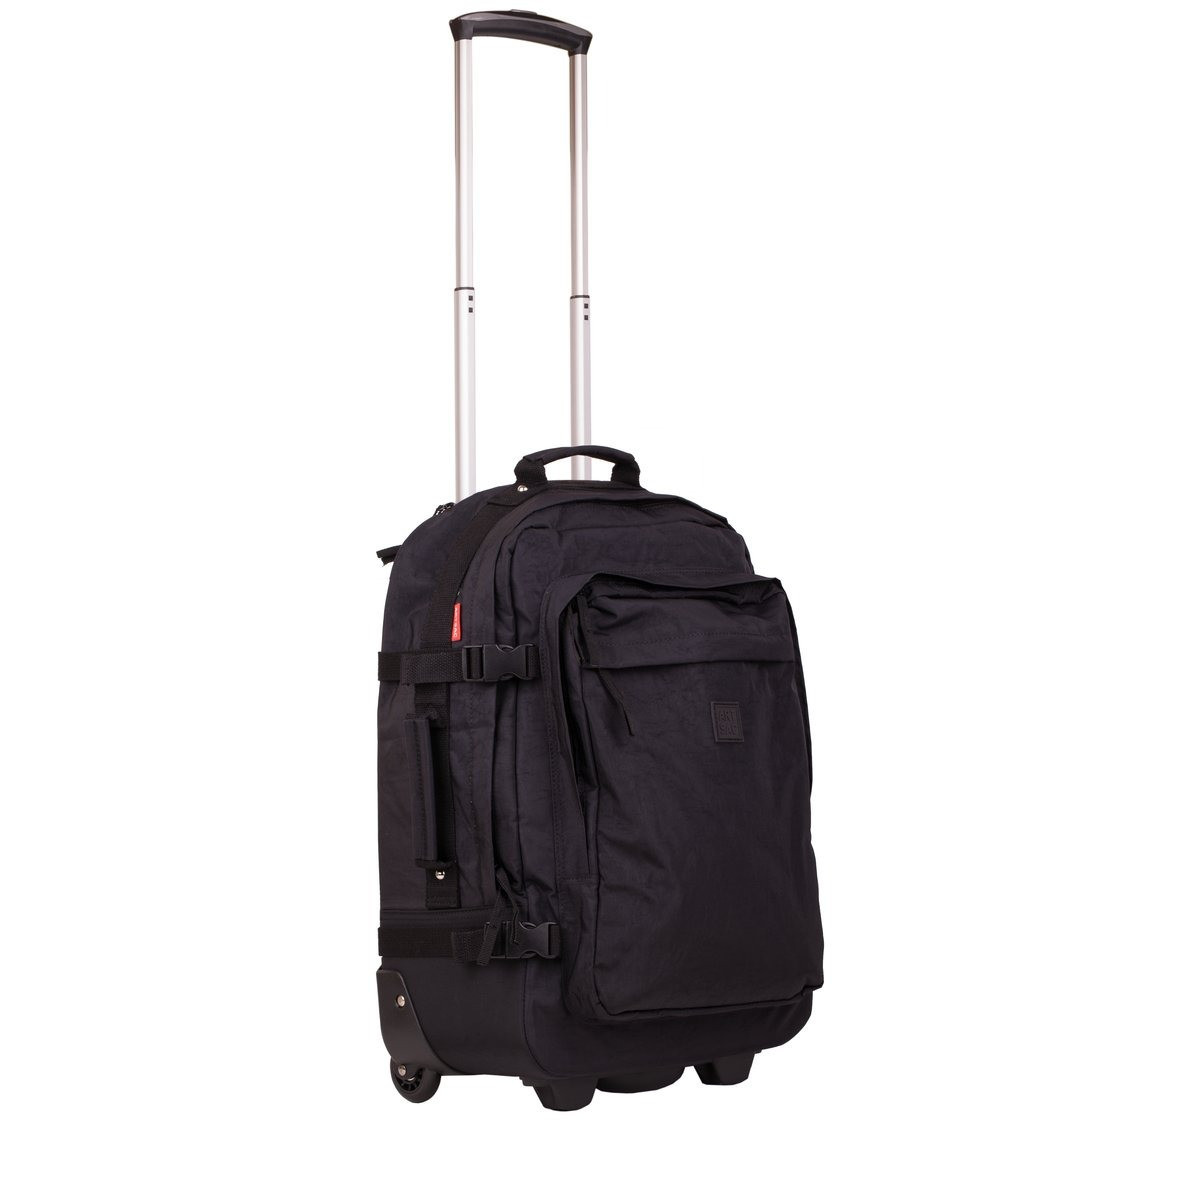 Medium Luggage / Trolley Case - Frnt Pkt